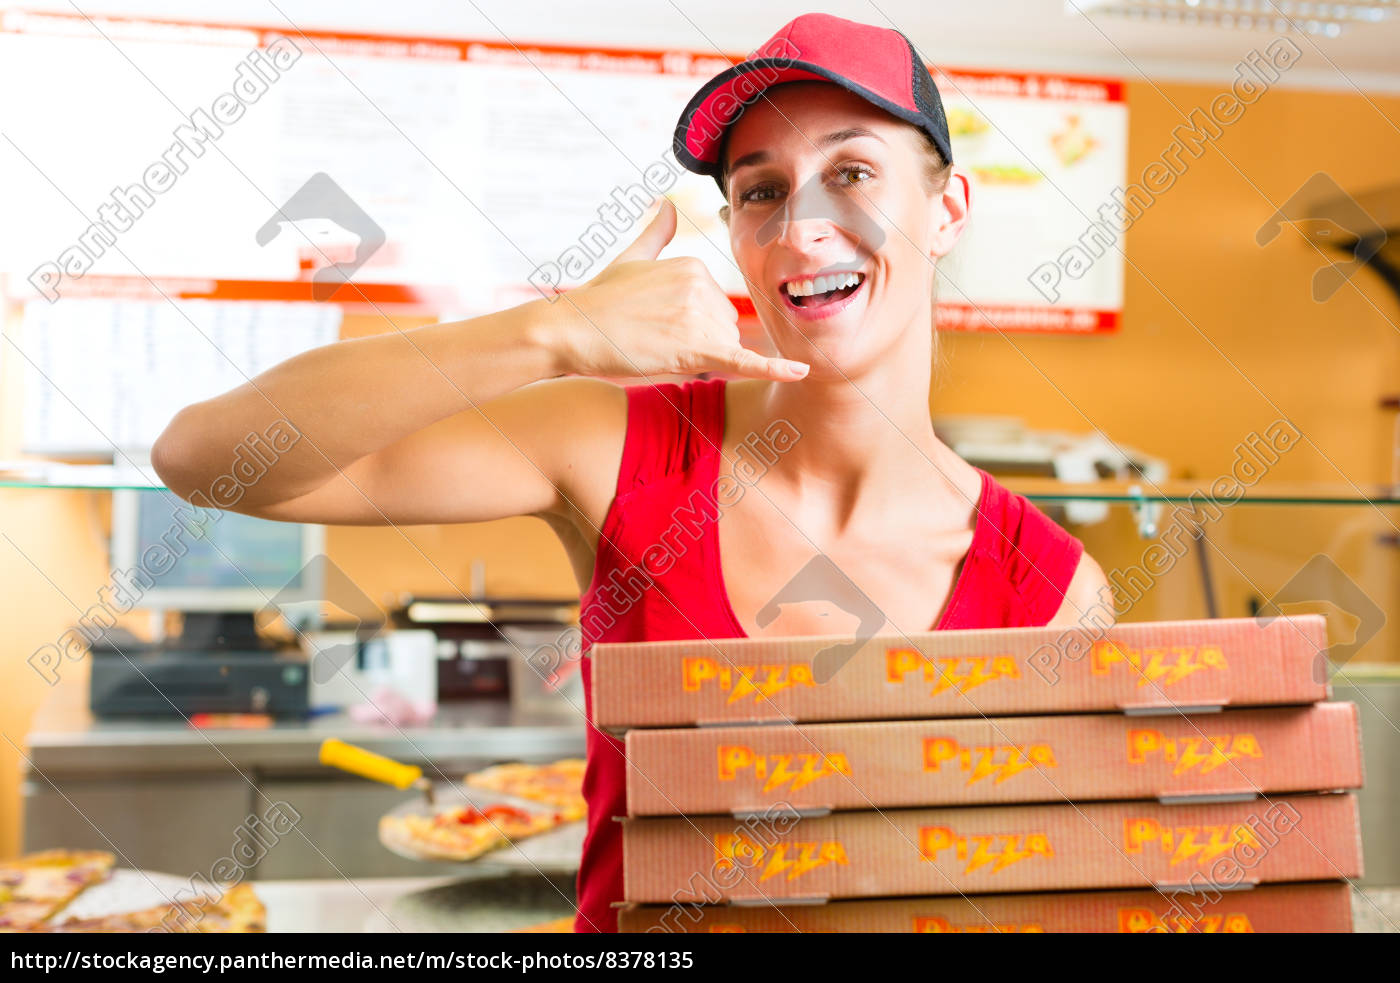 delivery, service, -, woman, holding, pizza - 8378135